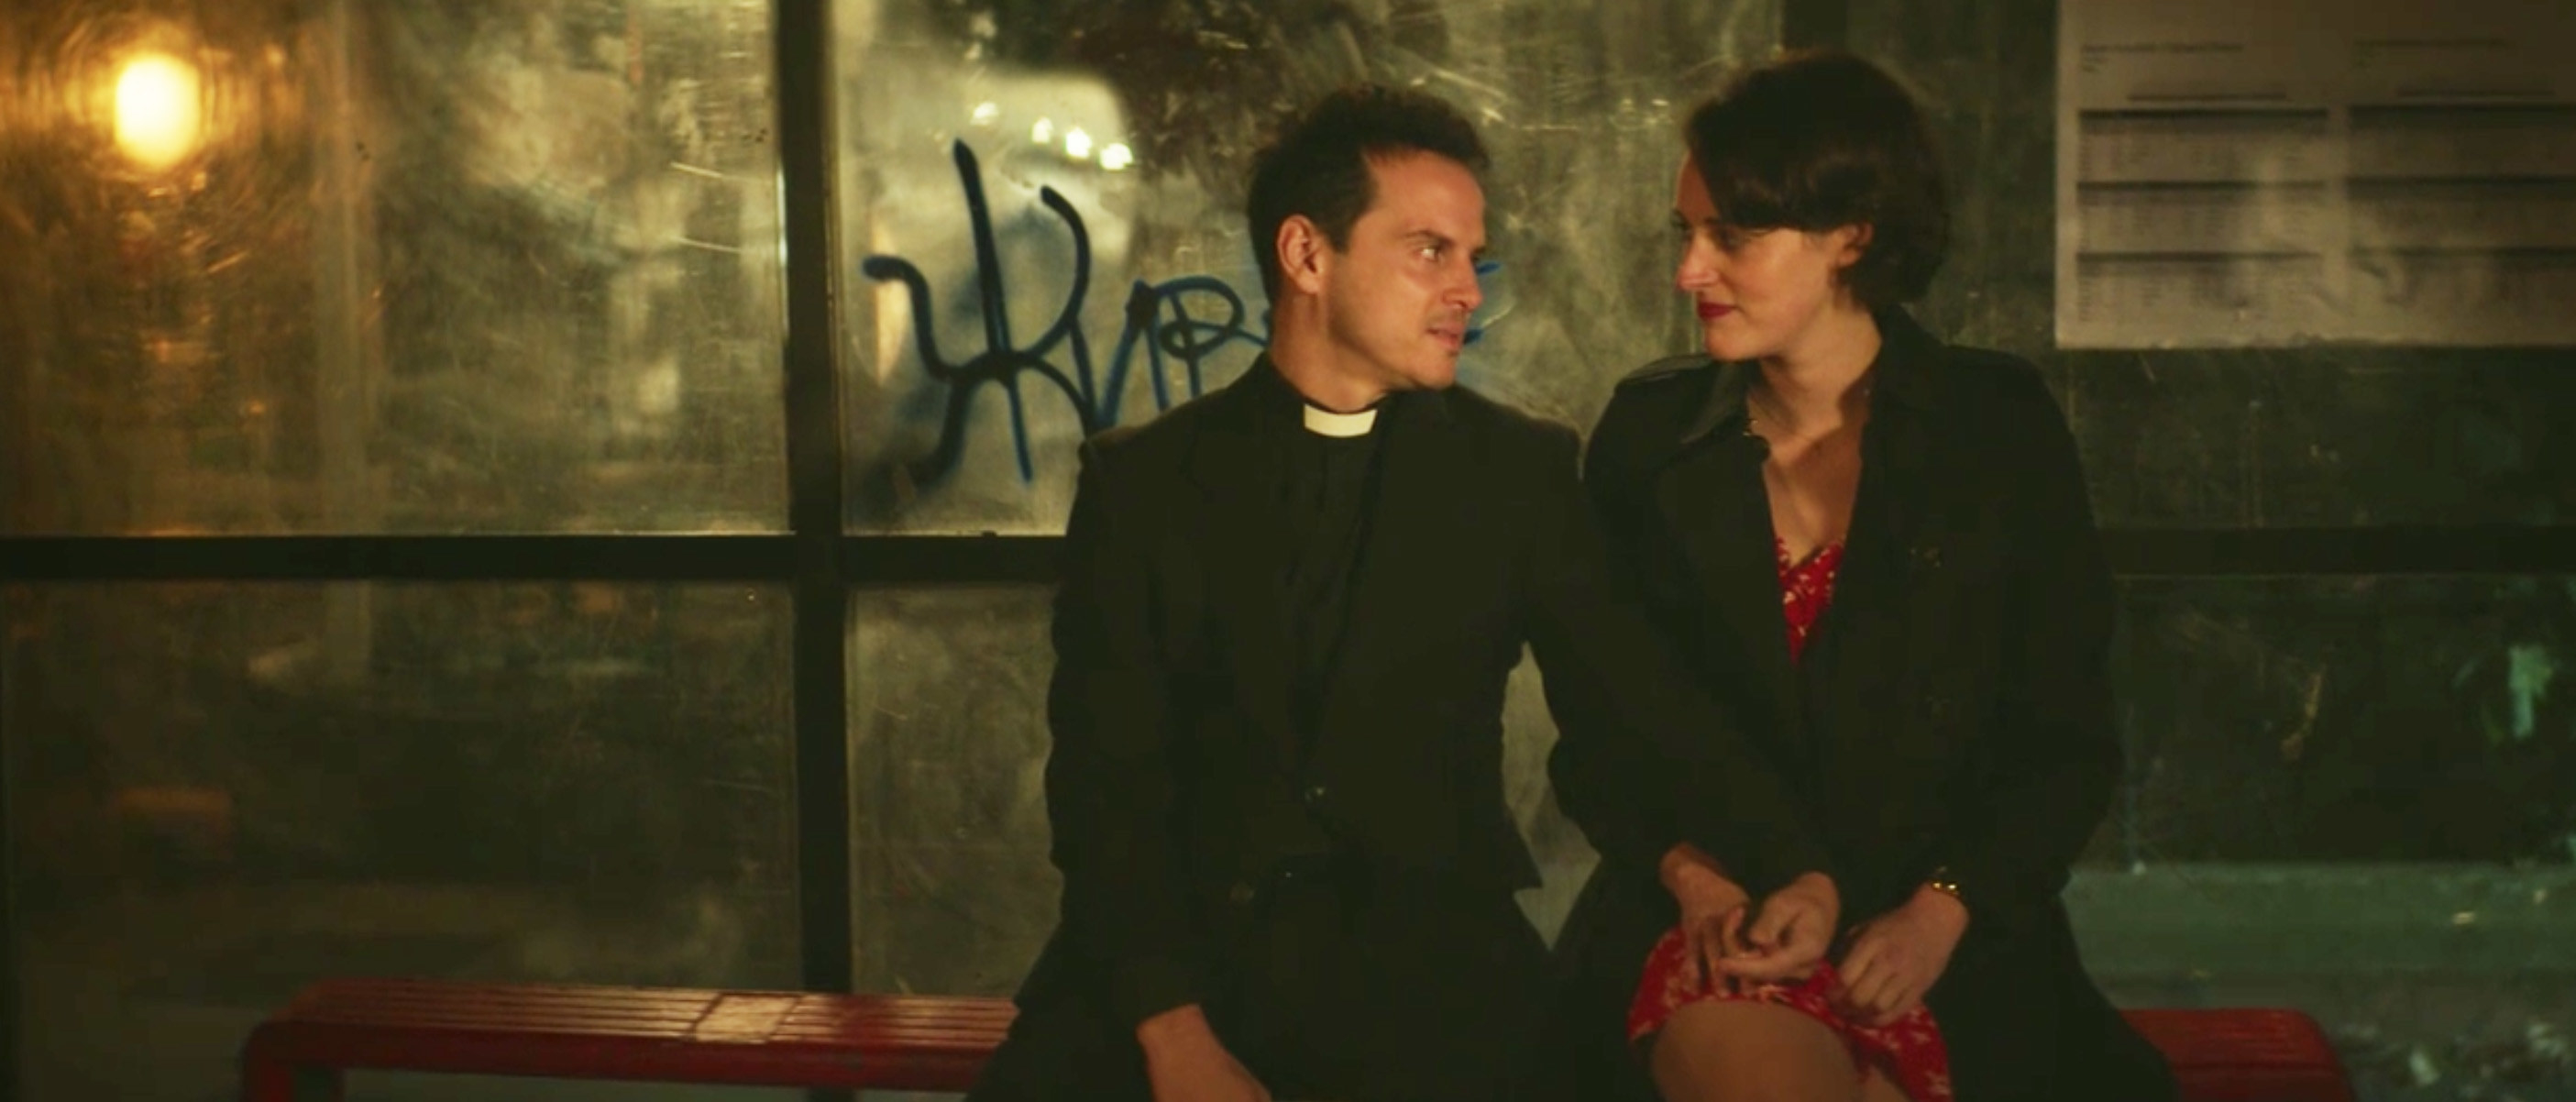 The Priest and Fleabag sitting next to each other